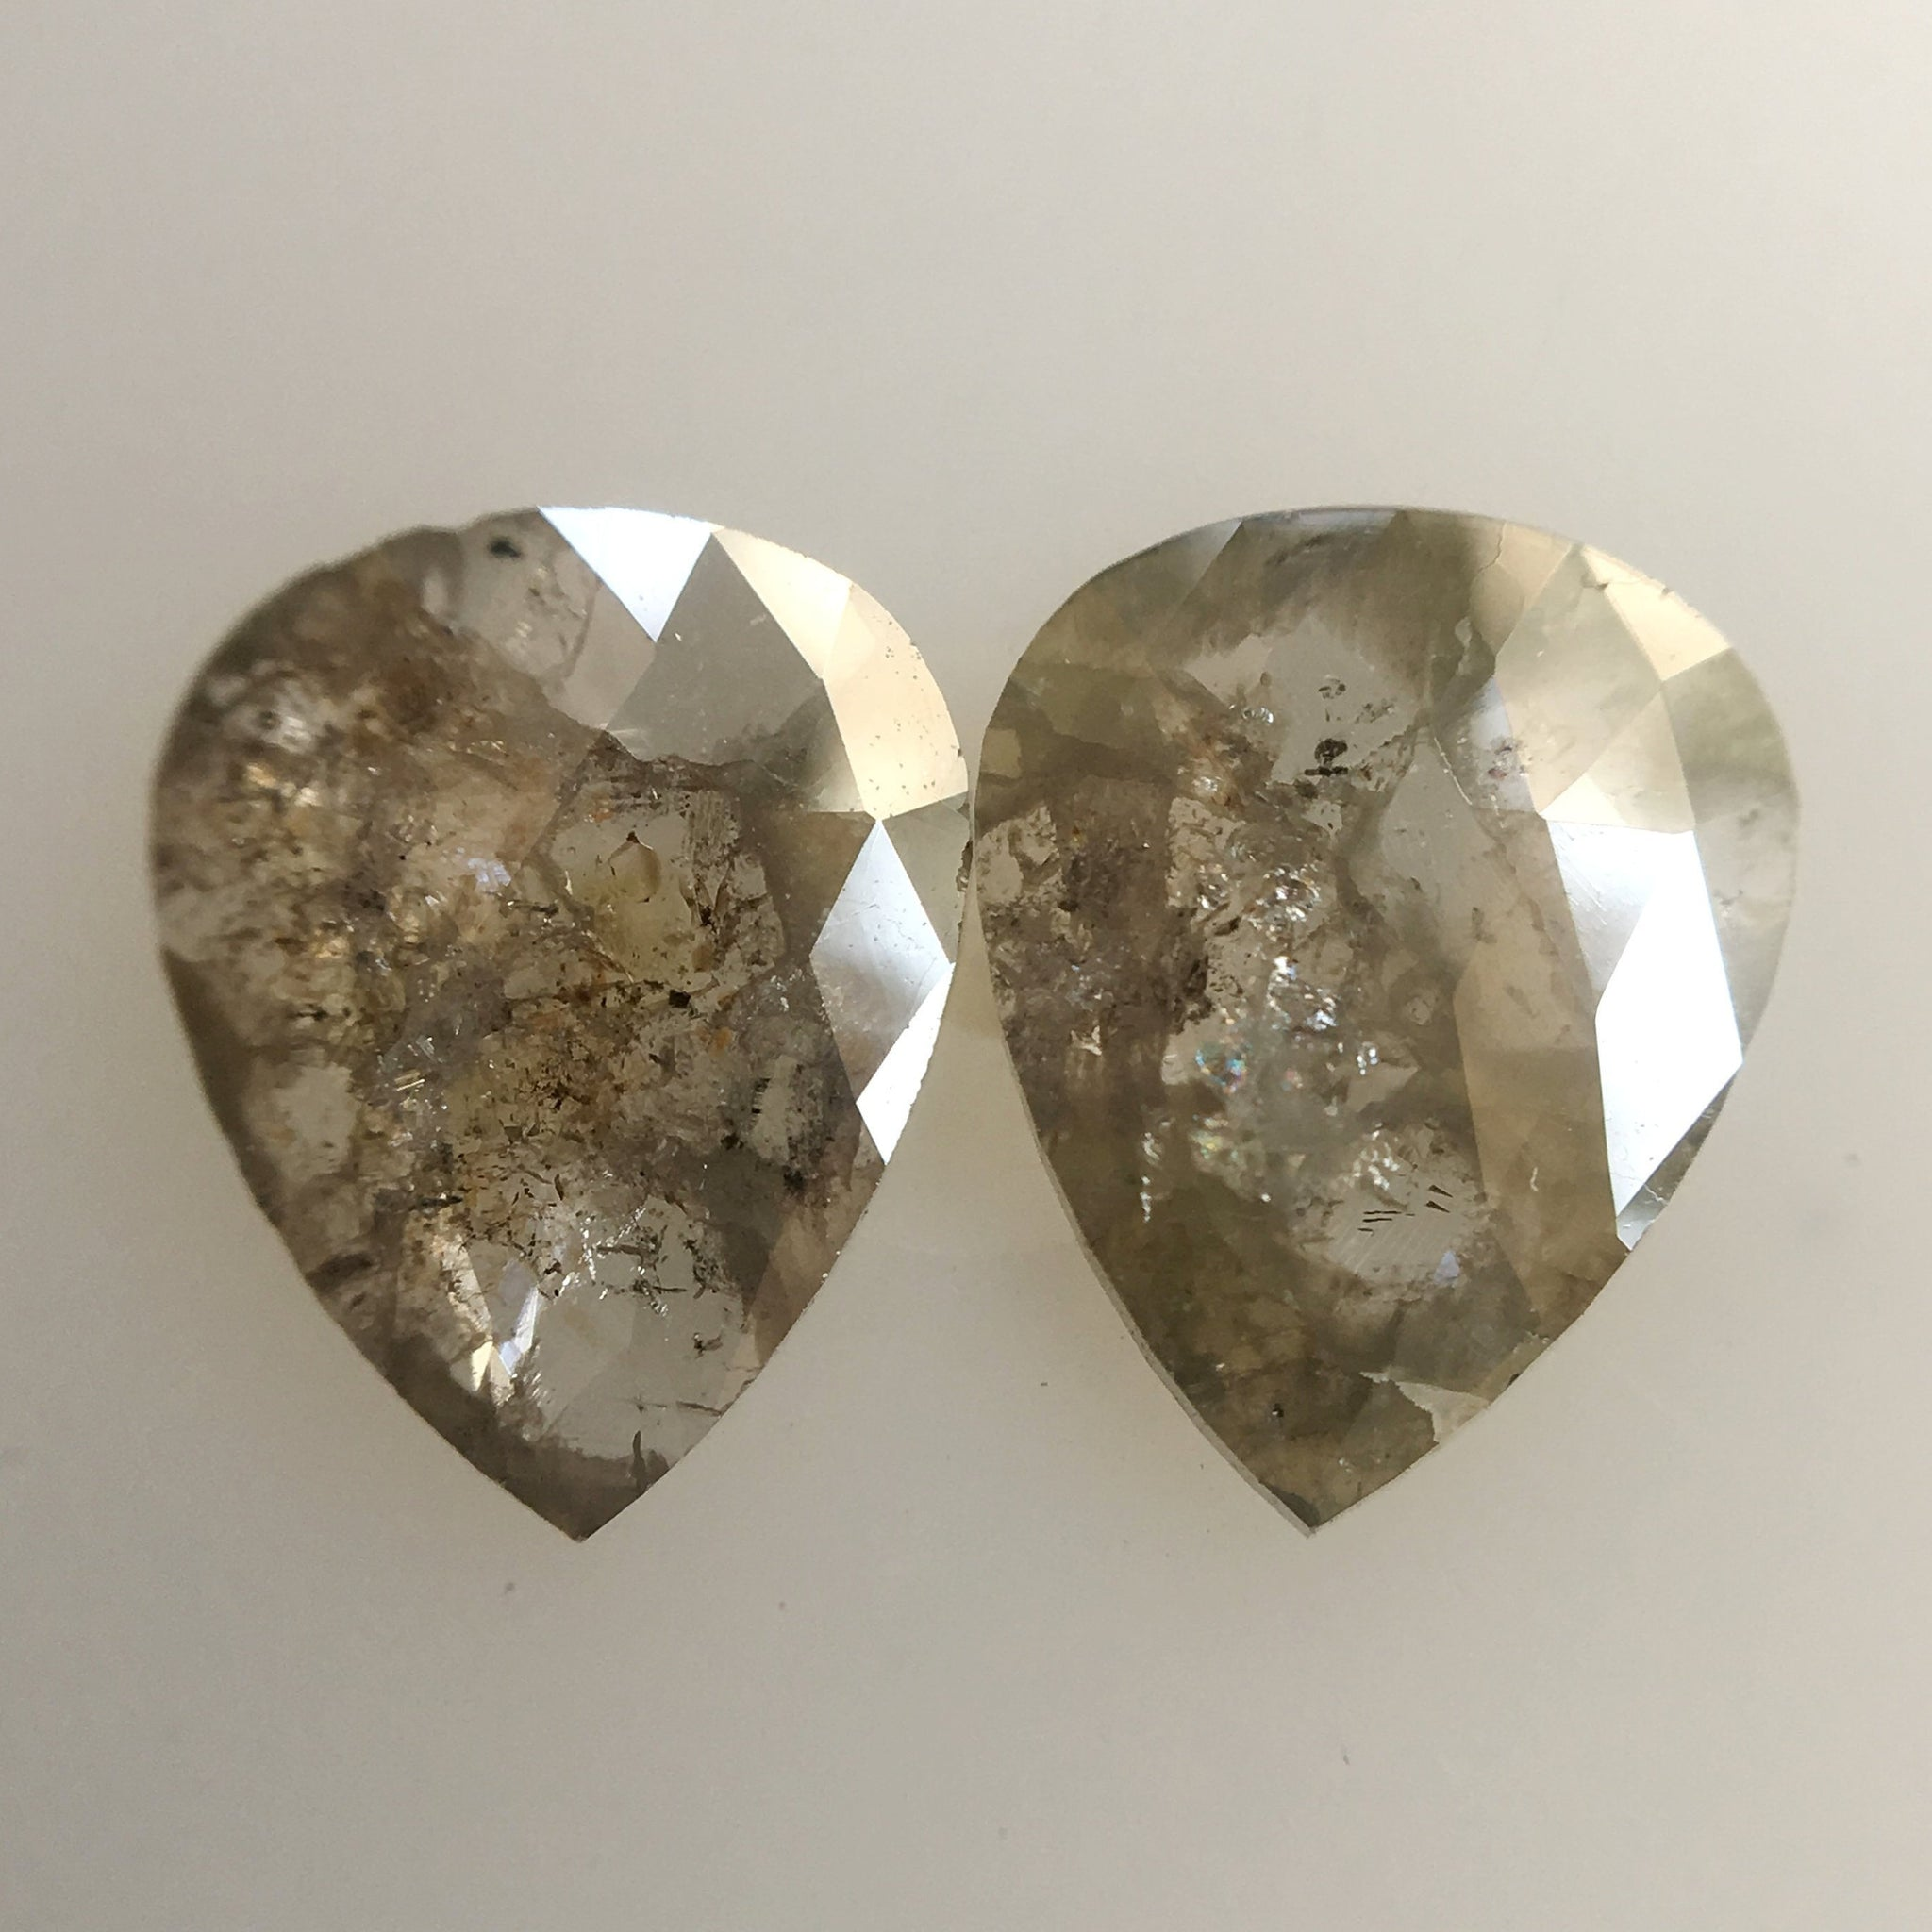 1.39 Ct Pear Shape Gray Rose cut Natural Loose Diamond, 8.20 mm X 6.50 mm X 1.30 mm Pear shape Diamond for Earrings SJ01/13 - Amba Jewel